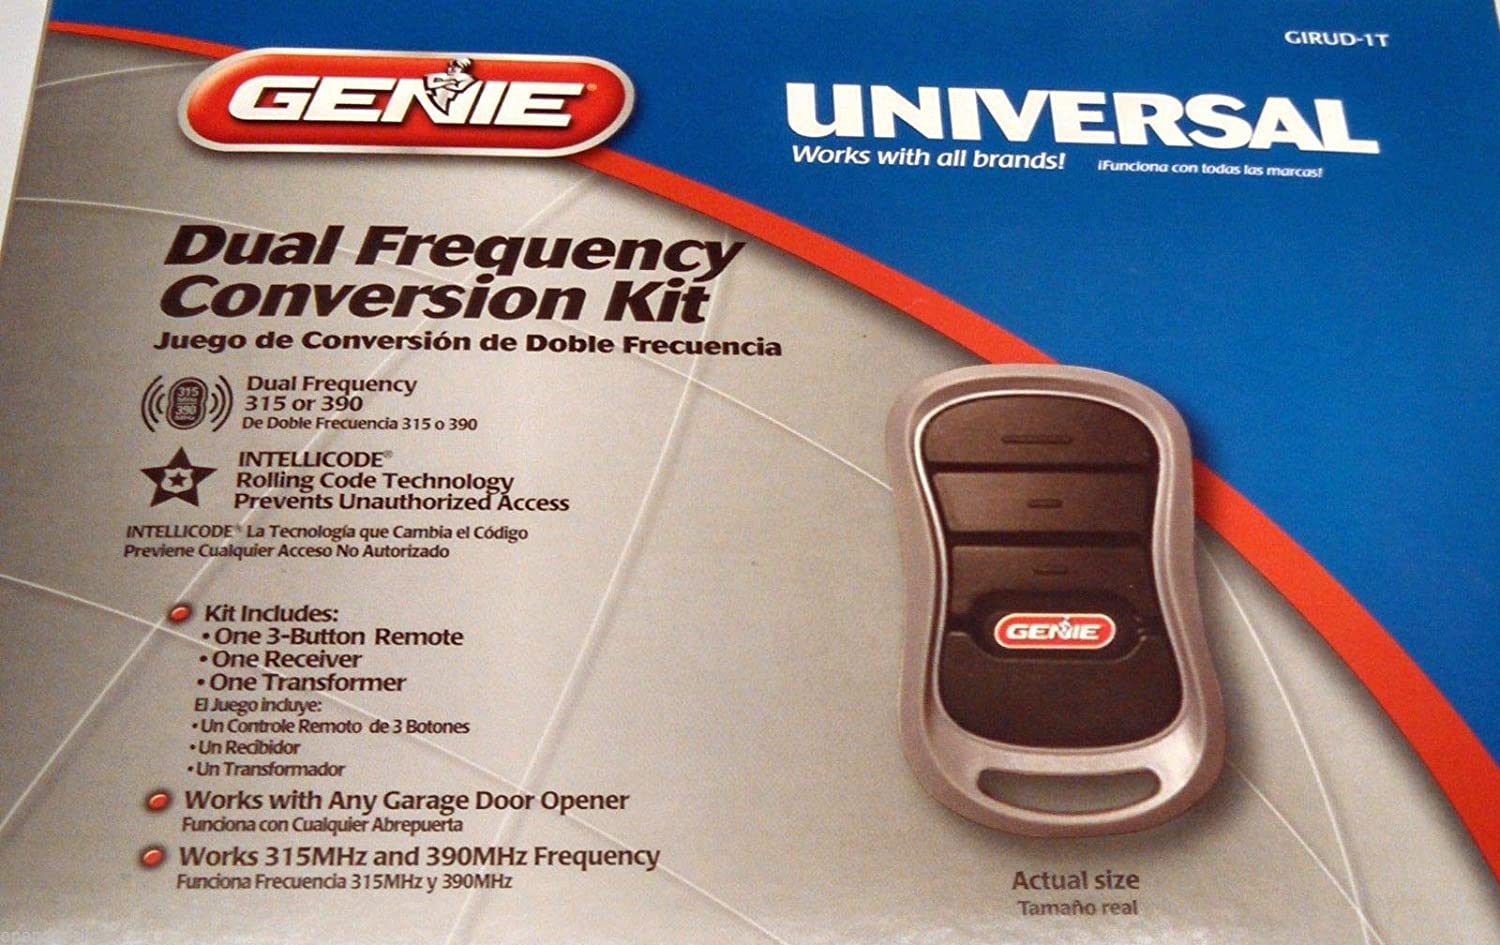 Genie GIRUD-1T Garage Opener Remote & Receiver Conversion Kit Intellicode 36359R - - Amazon.com